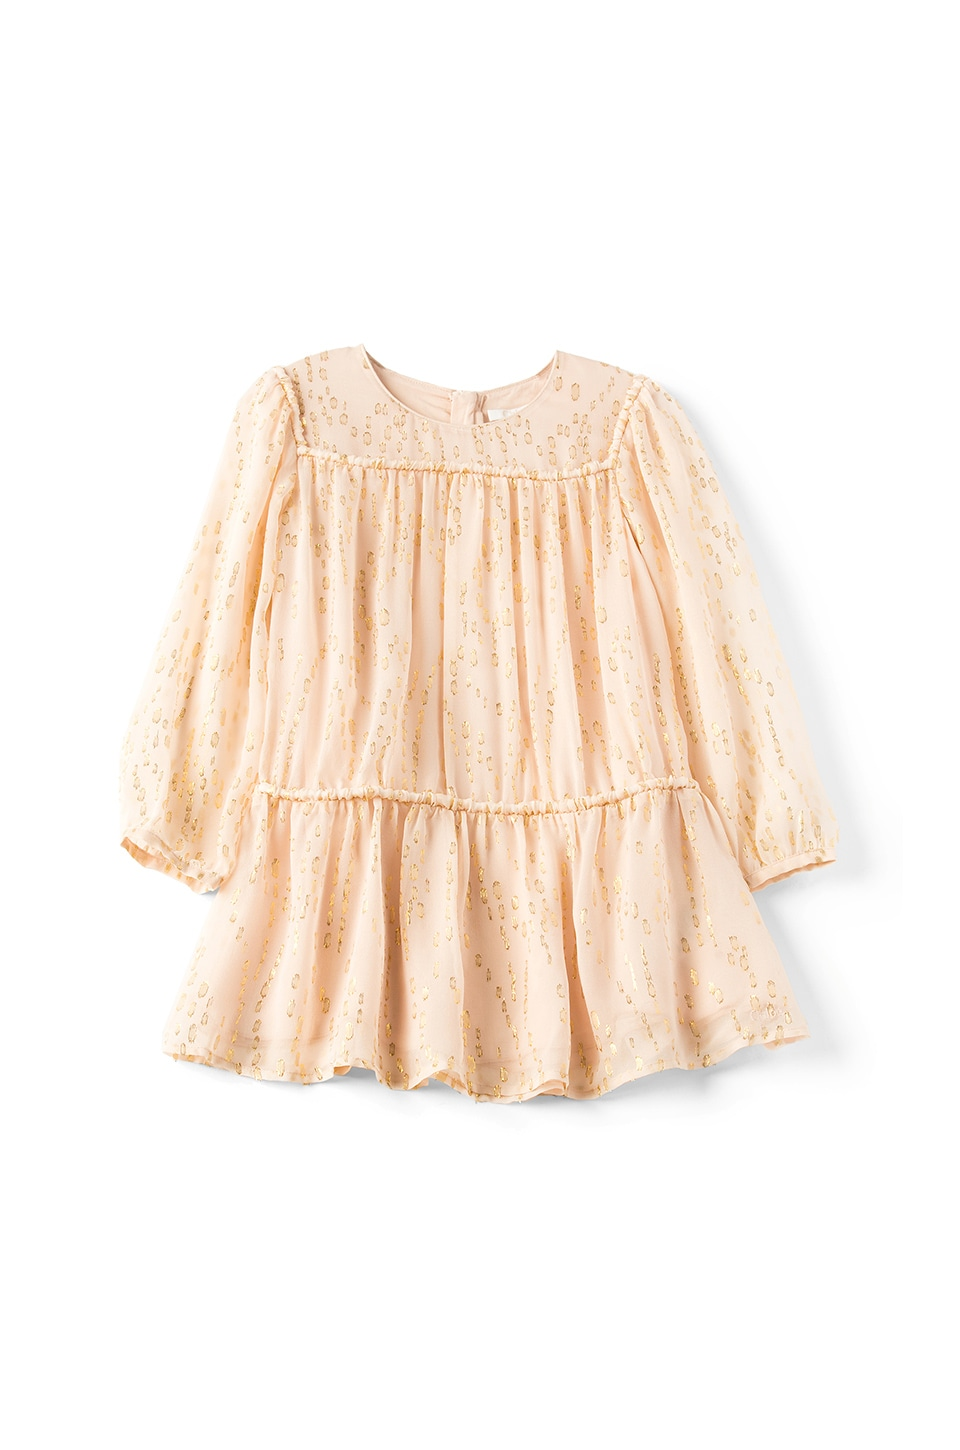 Chloe Kids Couture Silk Gold Splatter Dress in Rose Pale